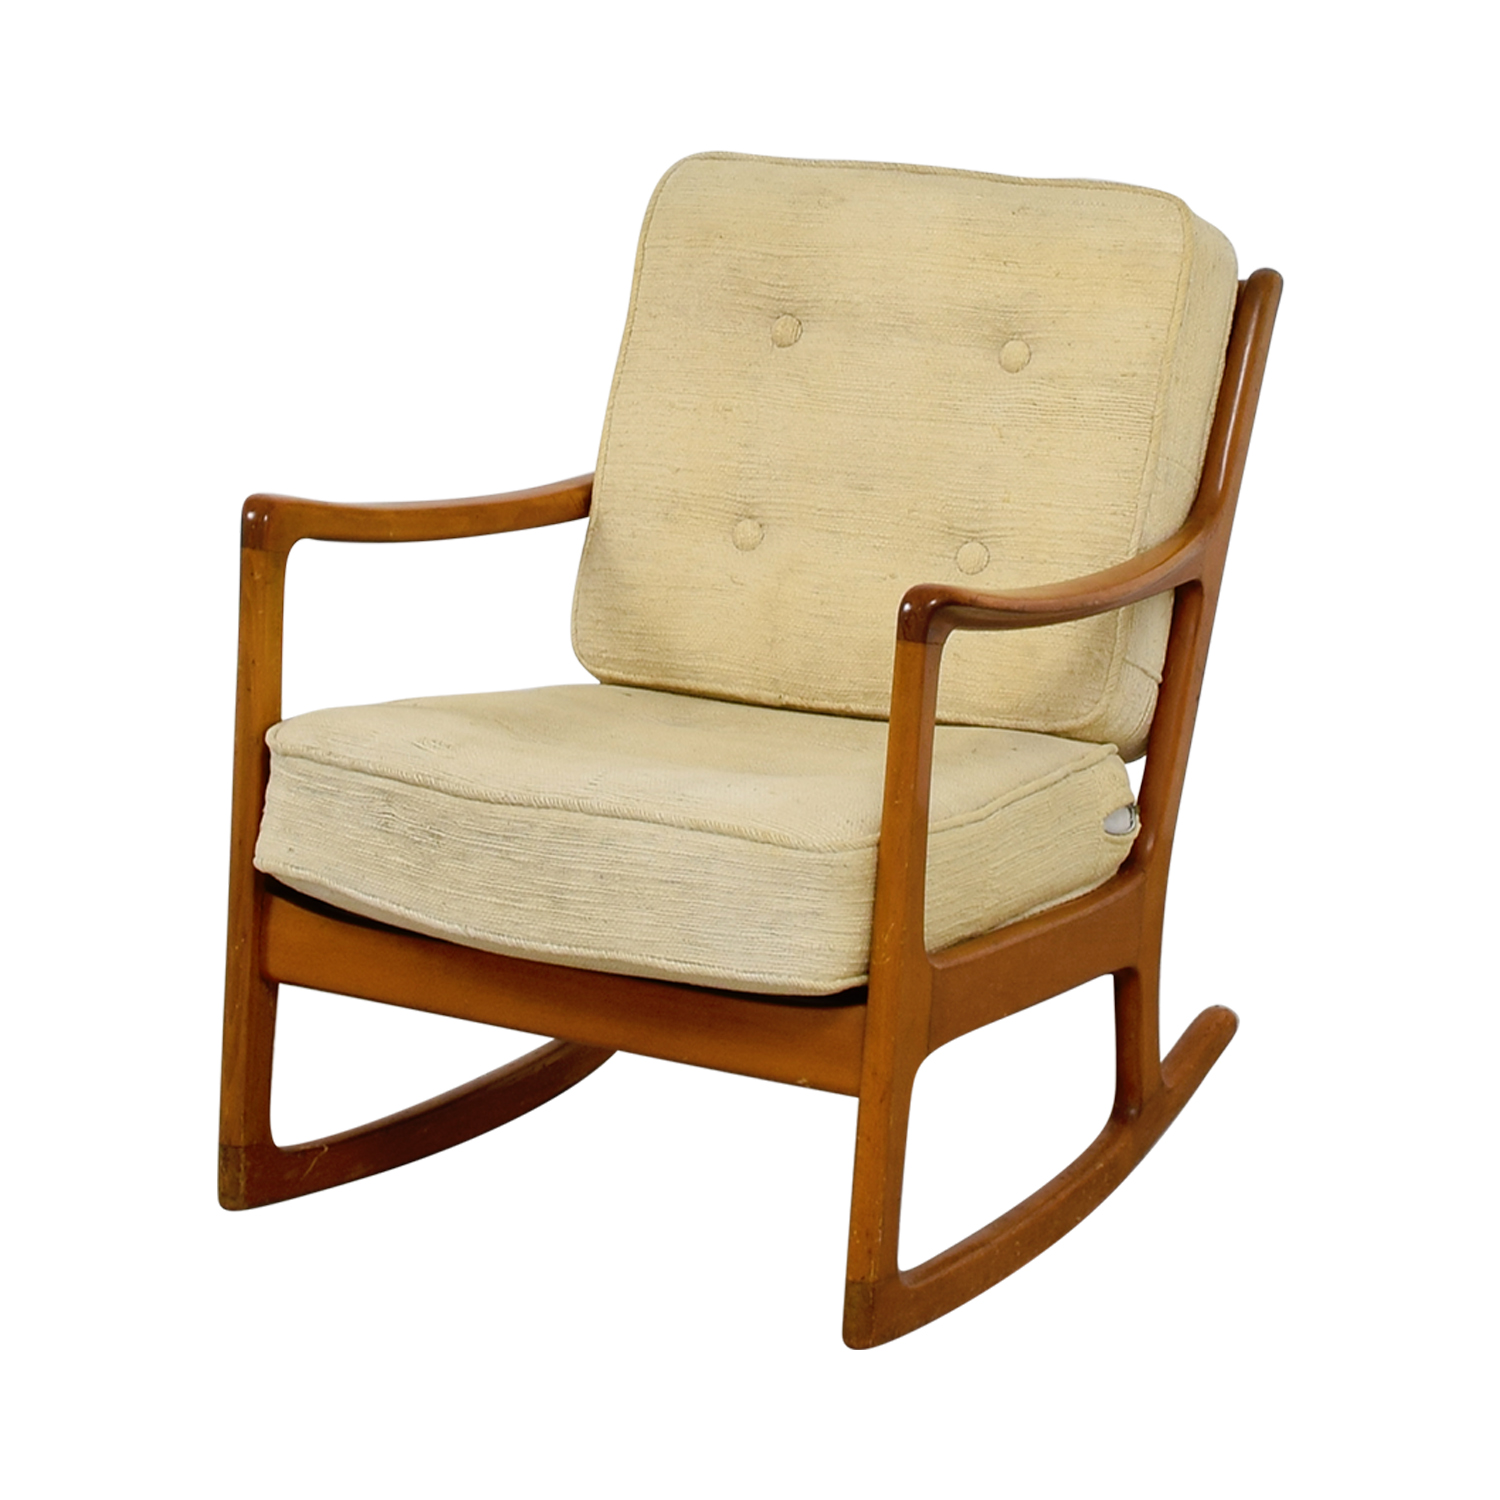 Accent Rocking Chairs 68 Off John Stuart Inc John Stuart Inc Mid Century